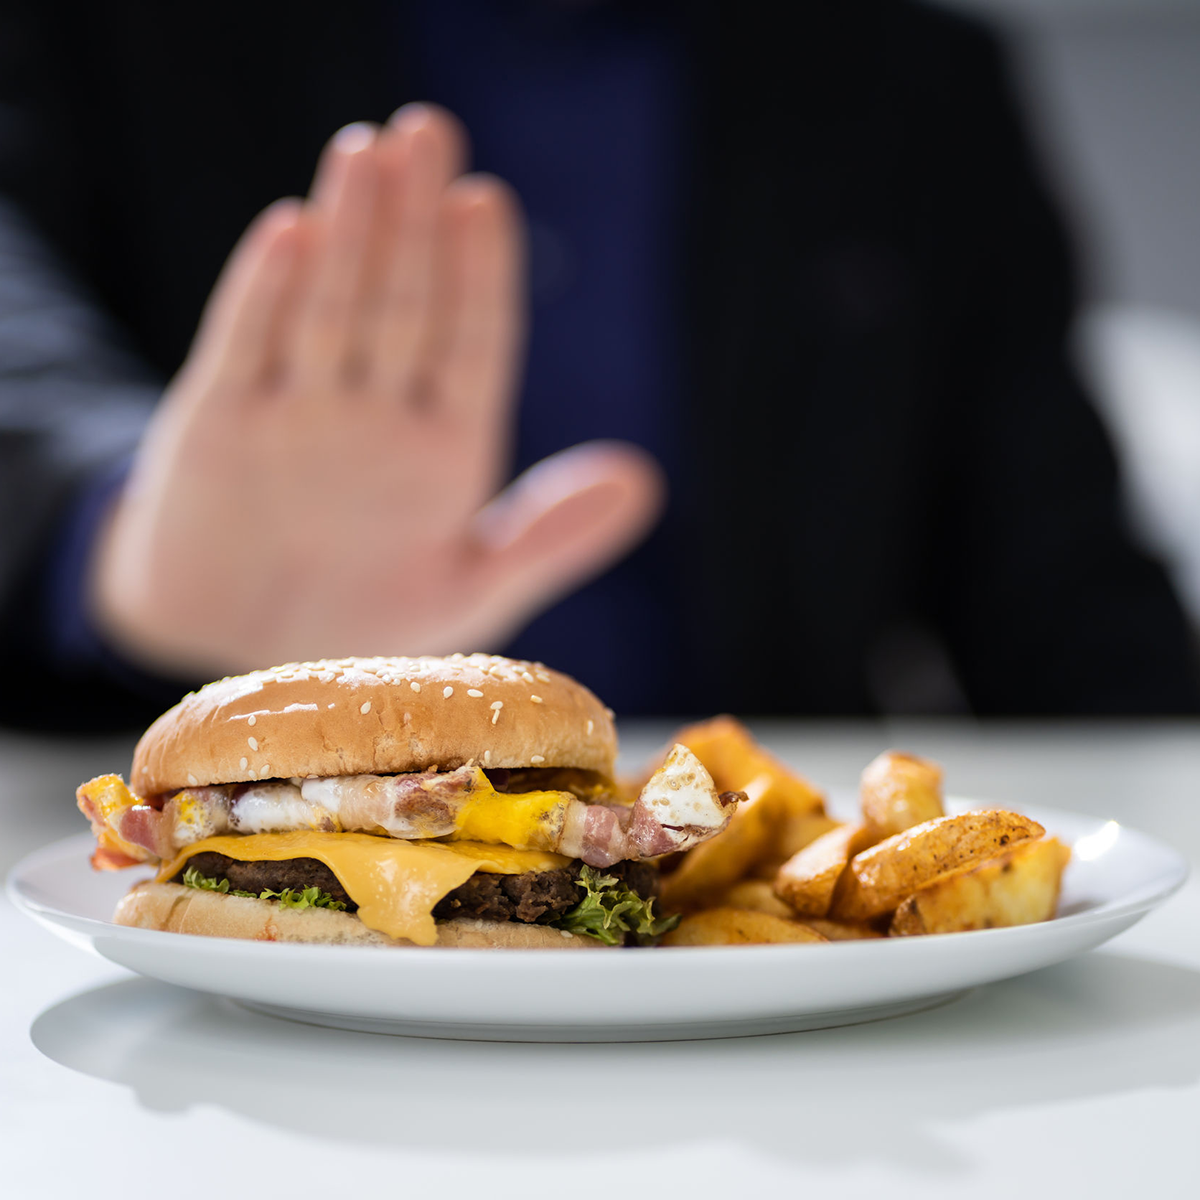 Food Intolerances - Which to Avoid After Bariatric Surgery